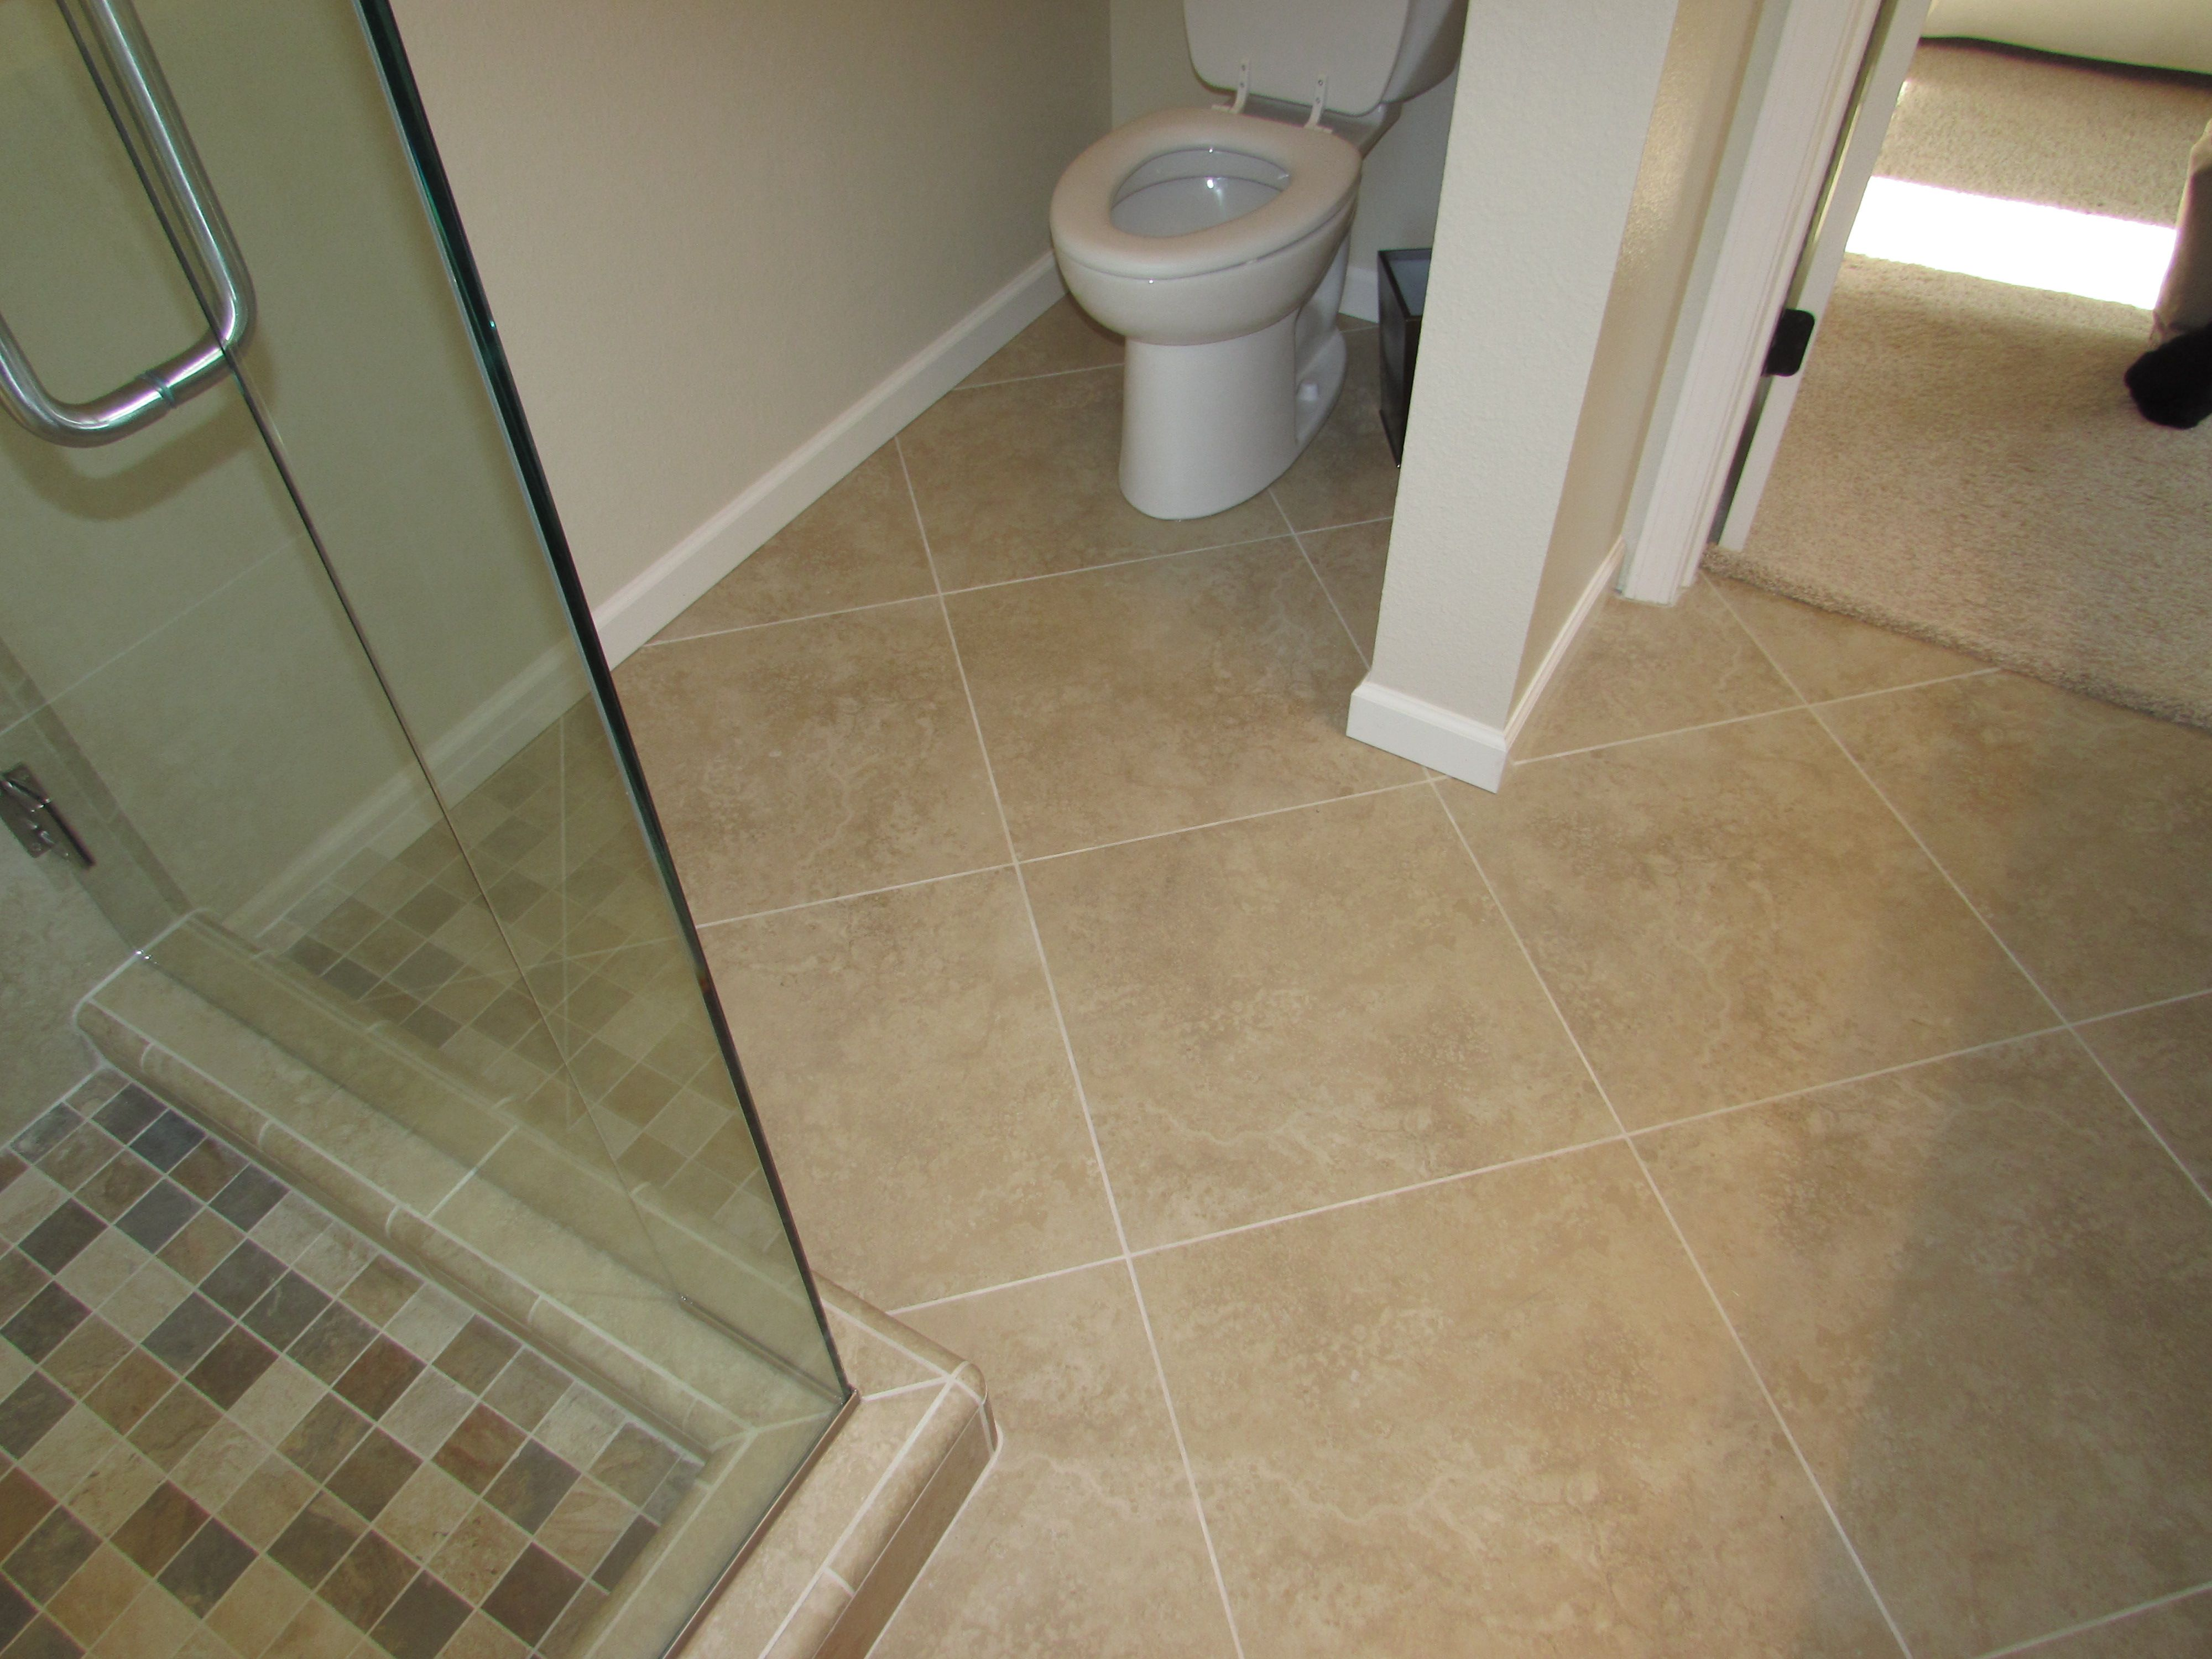 18 x 18 rectified porcelain floor on a diagonal pattern on a 18 x 18 rectified porcelain floor on a diagonal pattern on a bathroom floor with a dailygadgetfo Choice Image